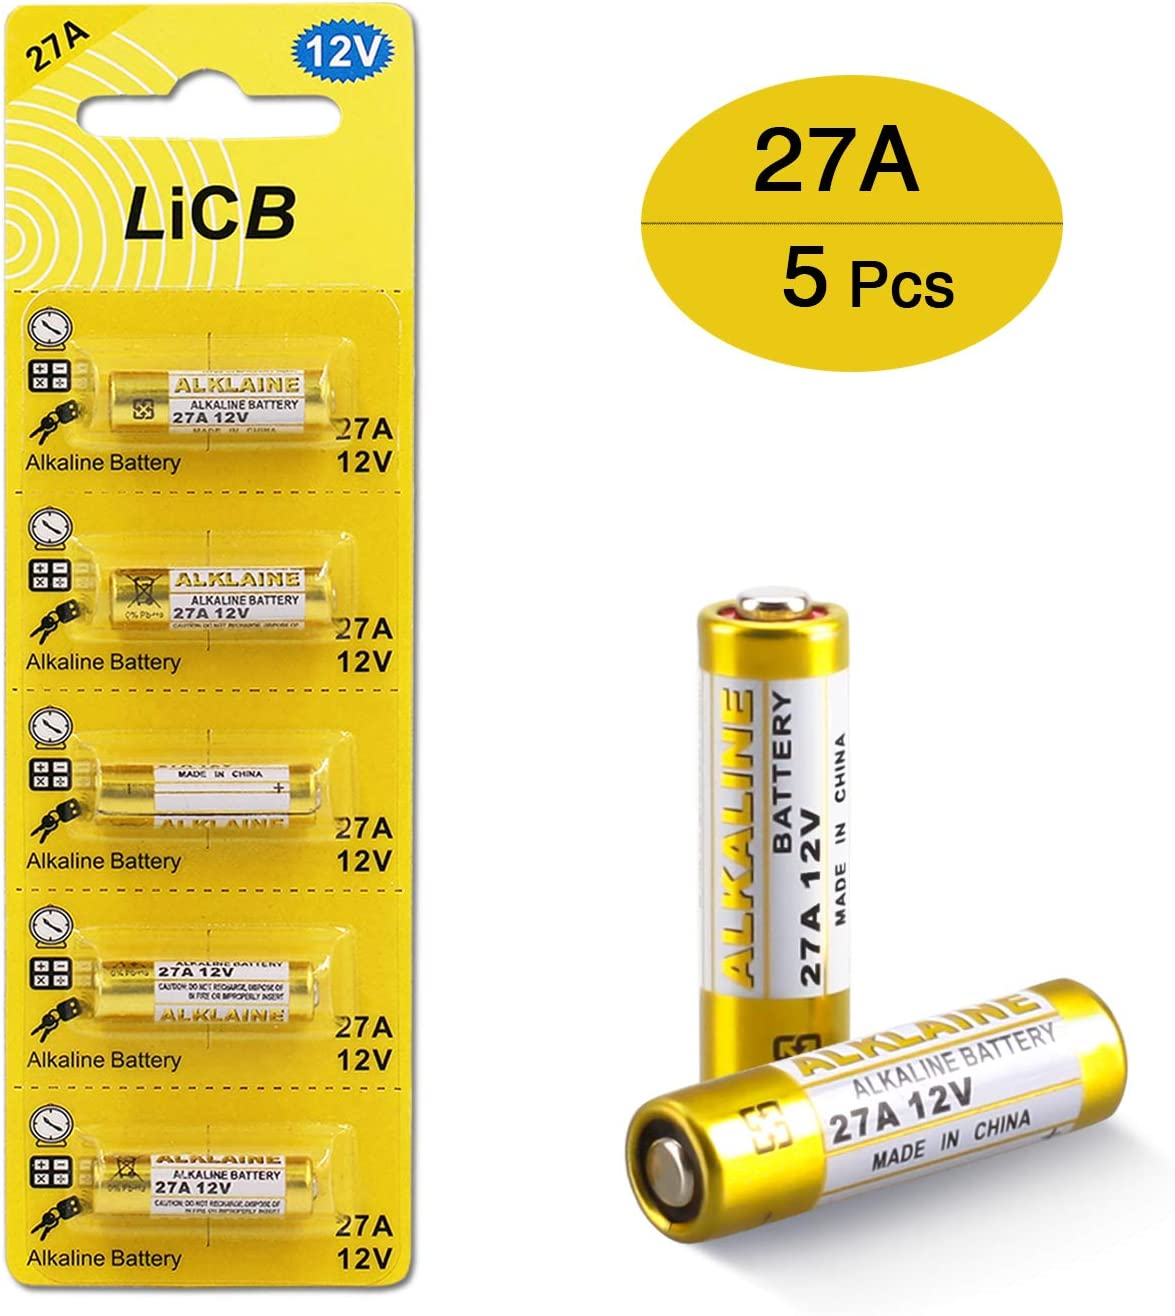 Cotchear 5Pcs 12V 27A Alkaline Battery 27A 12 Volt Batteries 27A 12V 21//23 E23A Alkaline Batteries